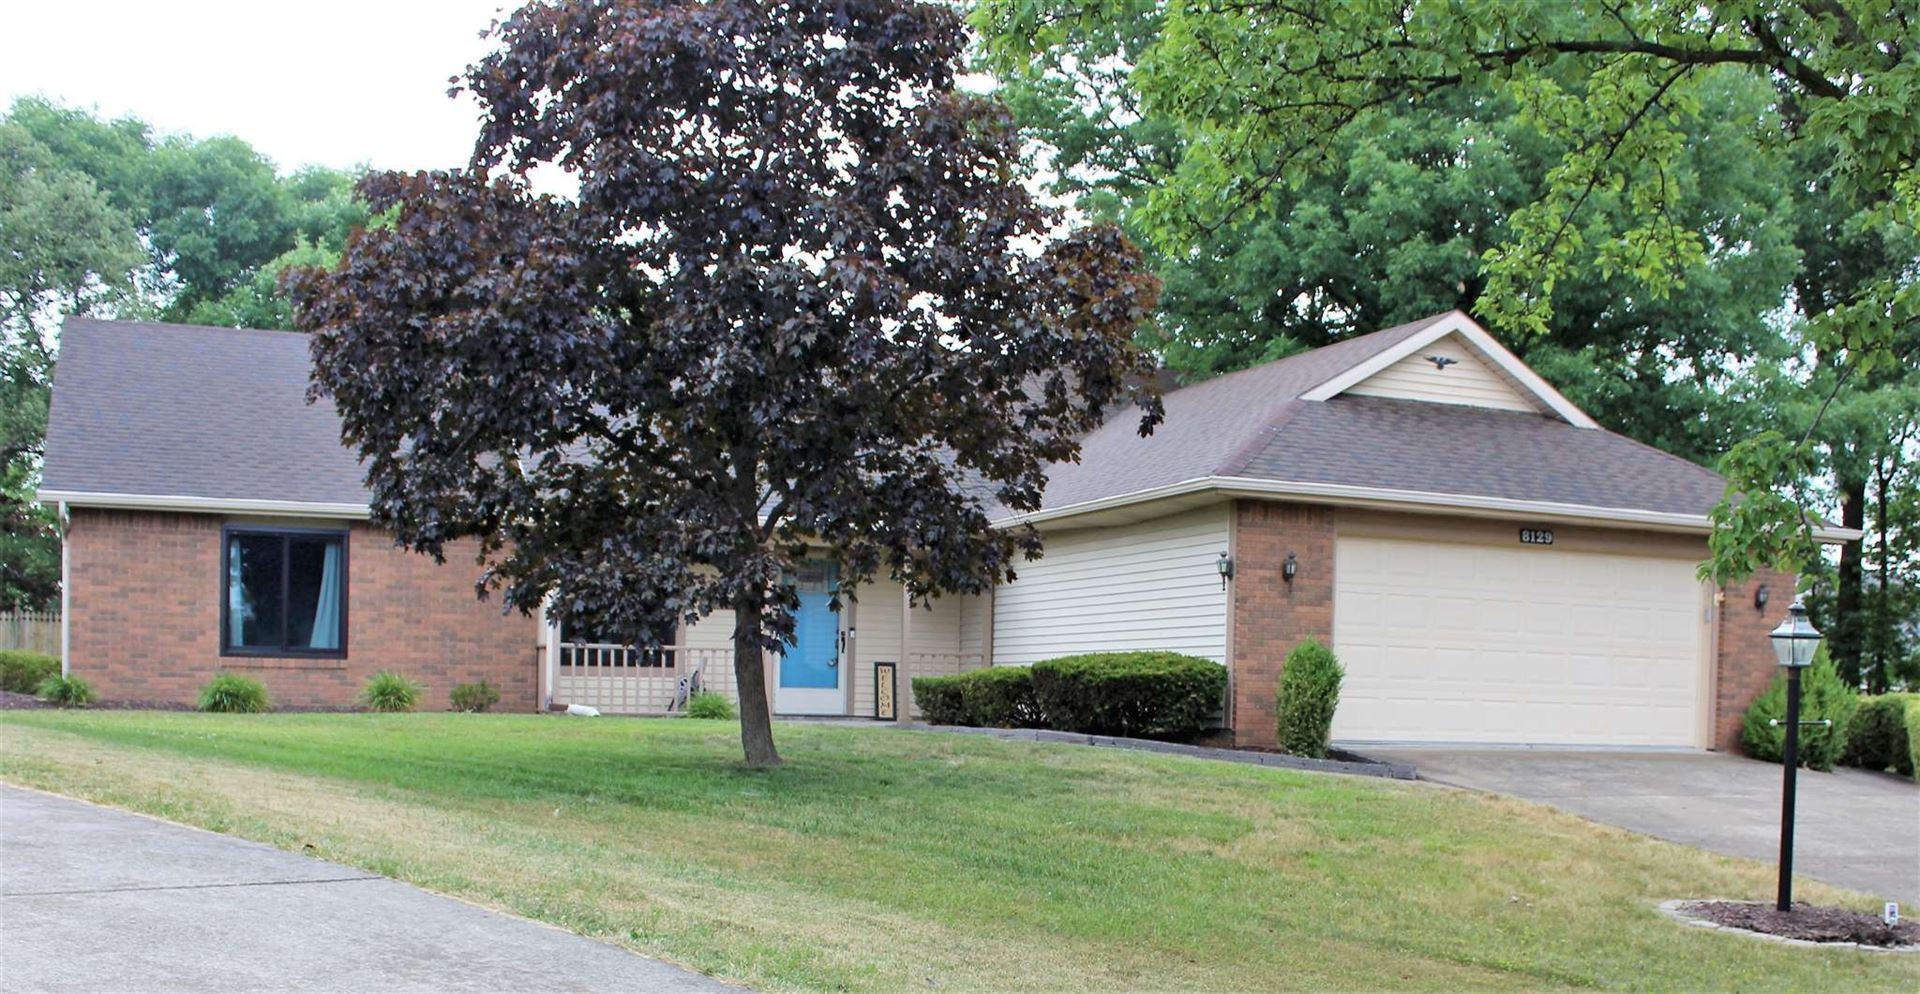 8129 Moss Grove Place, Fort Wayne, IN 46825 - #: 202026502